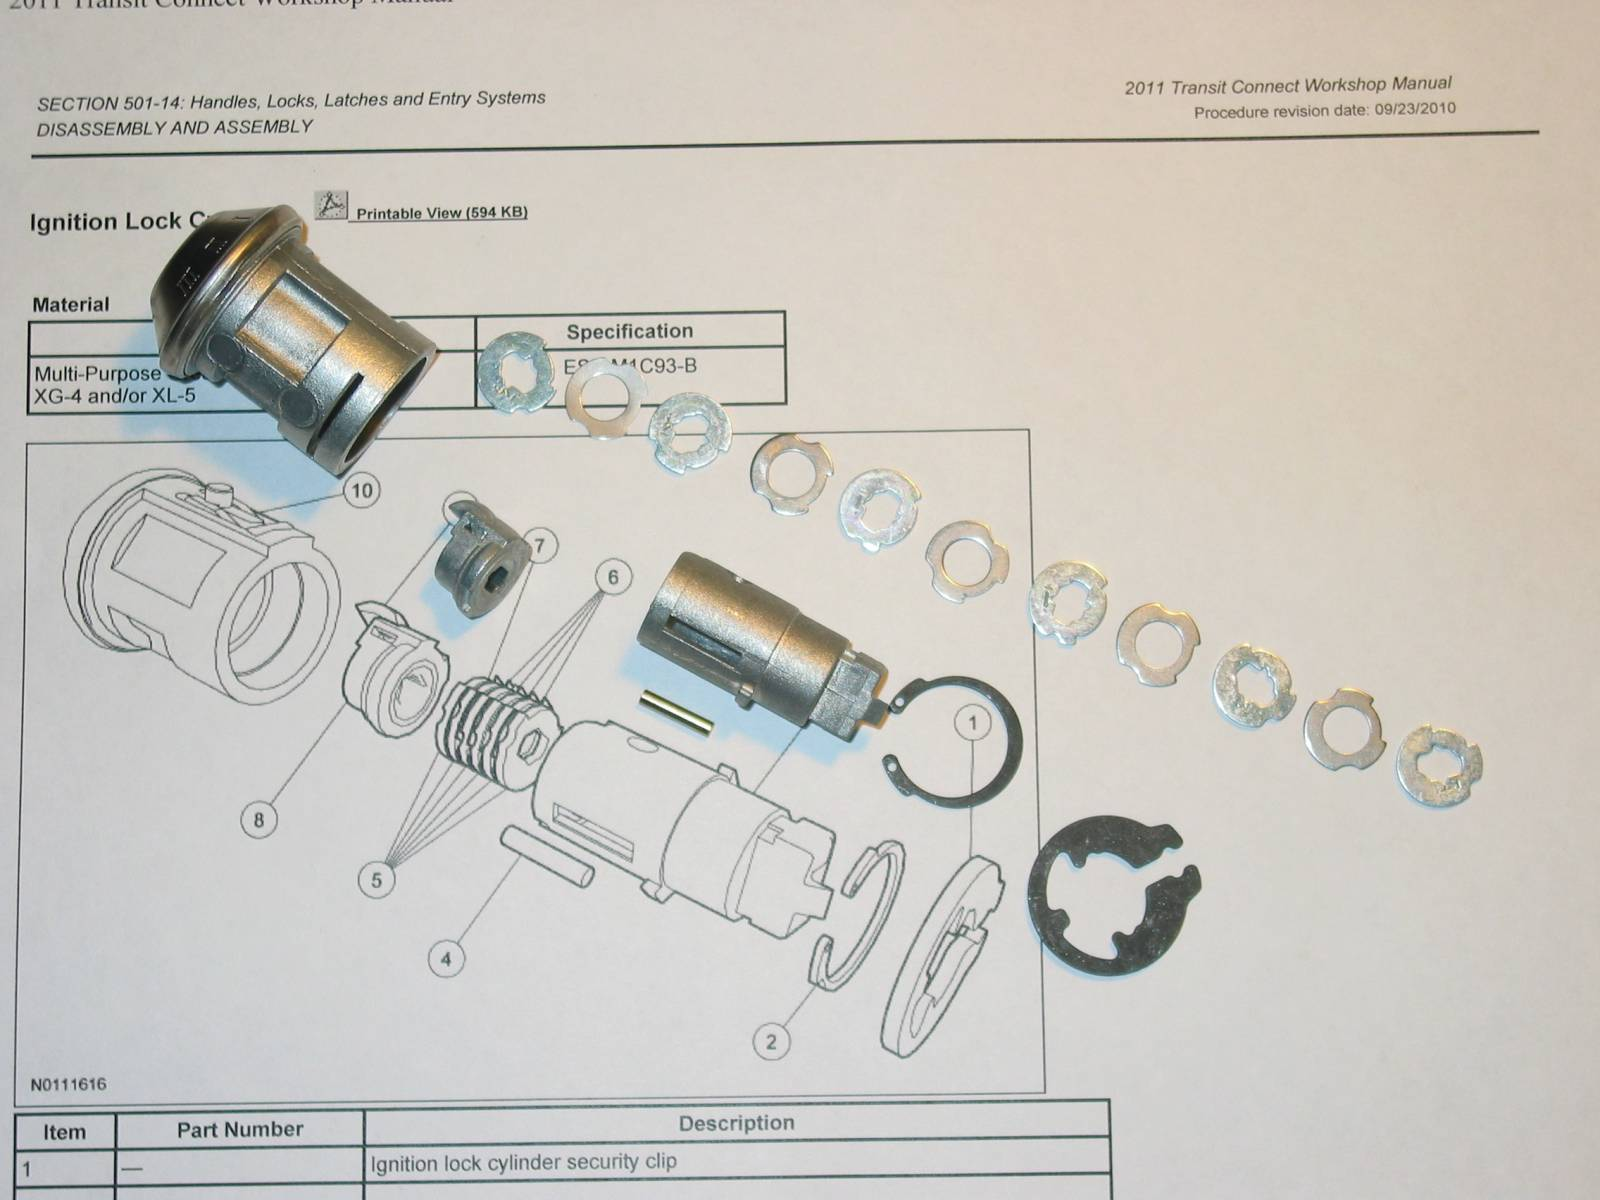 Assembling replacement ignition cylinder for 2011 Ford Transit